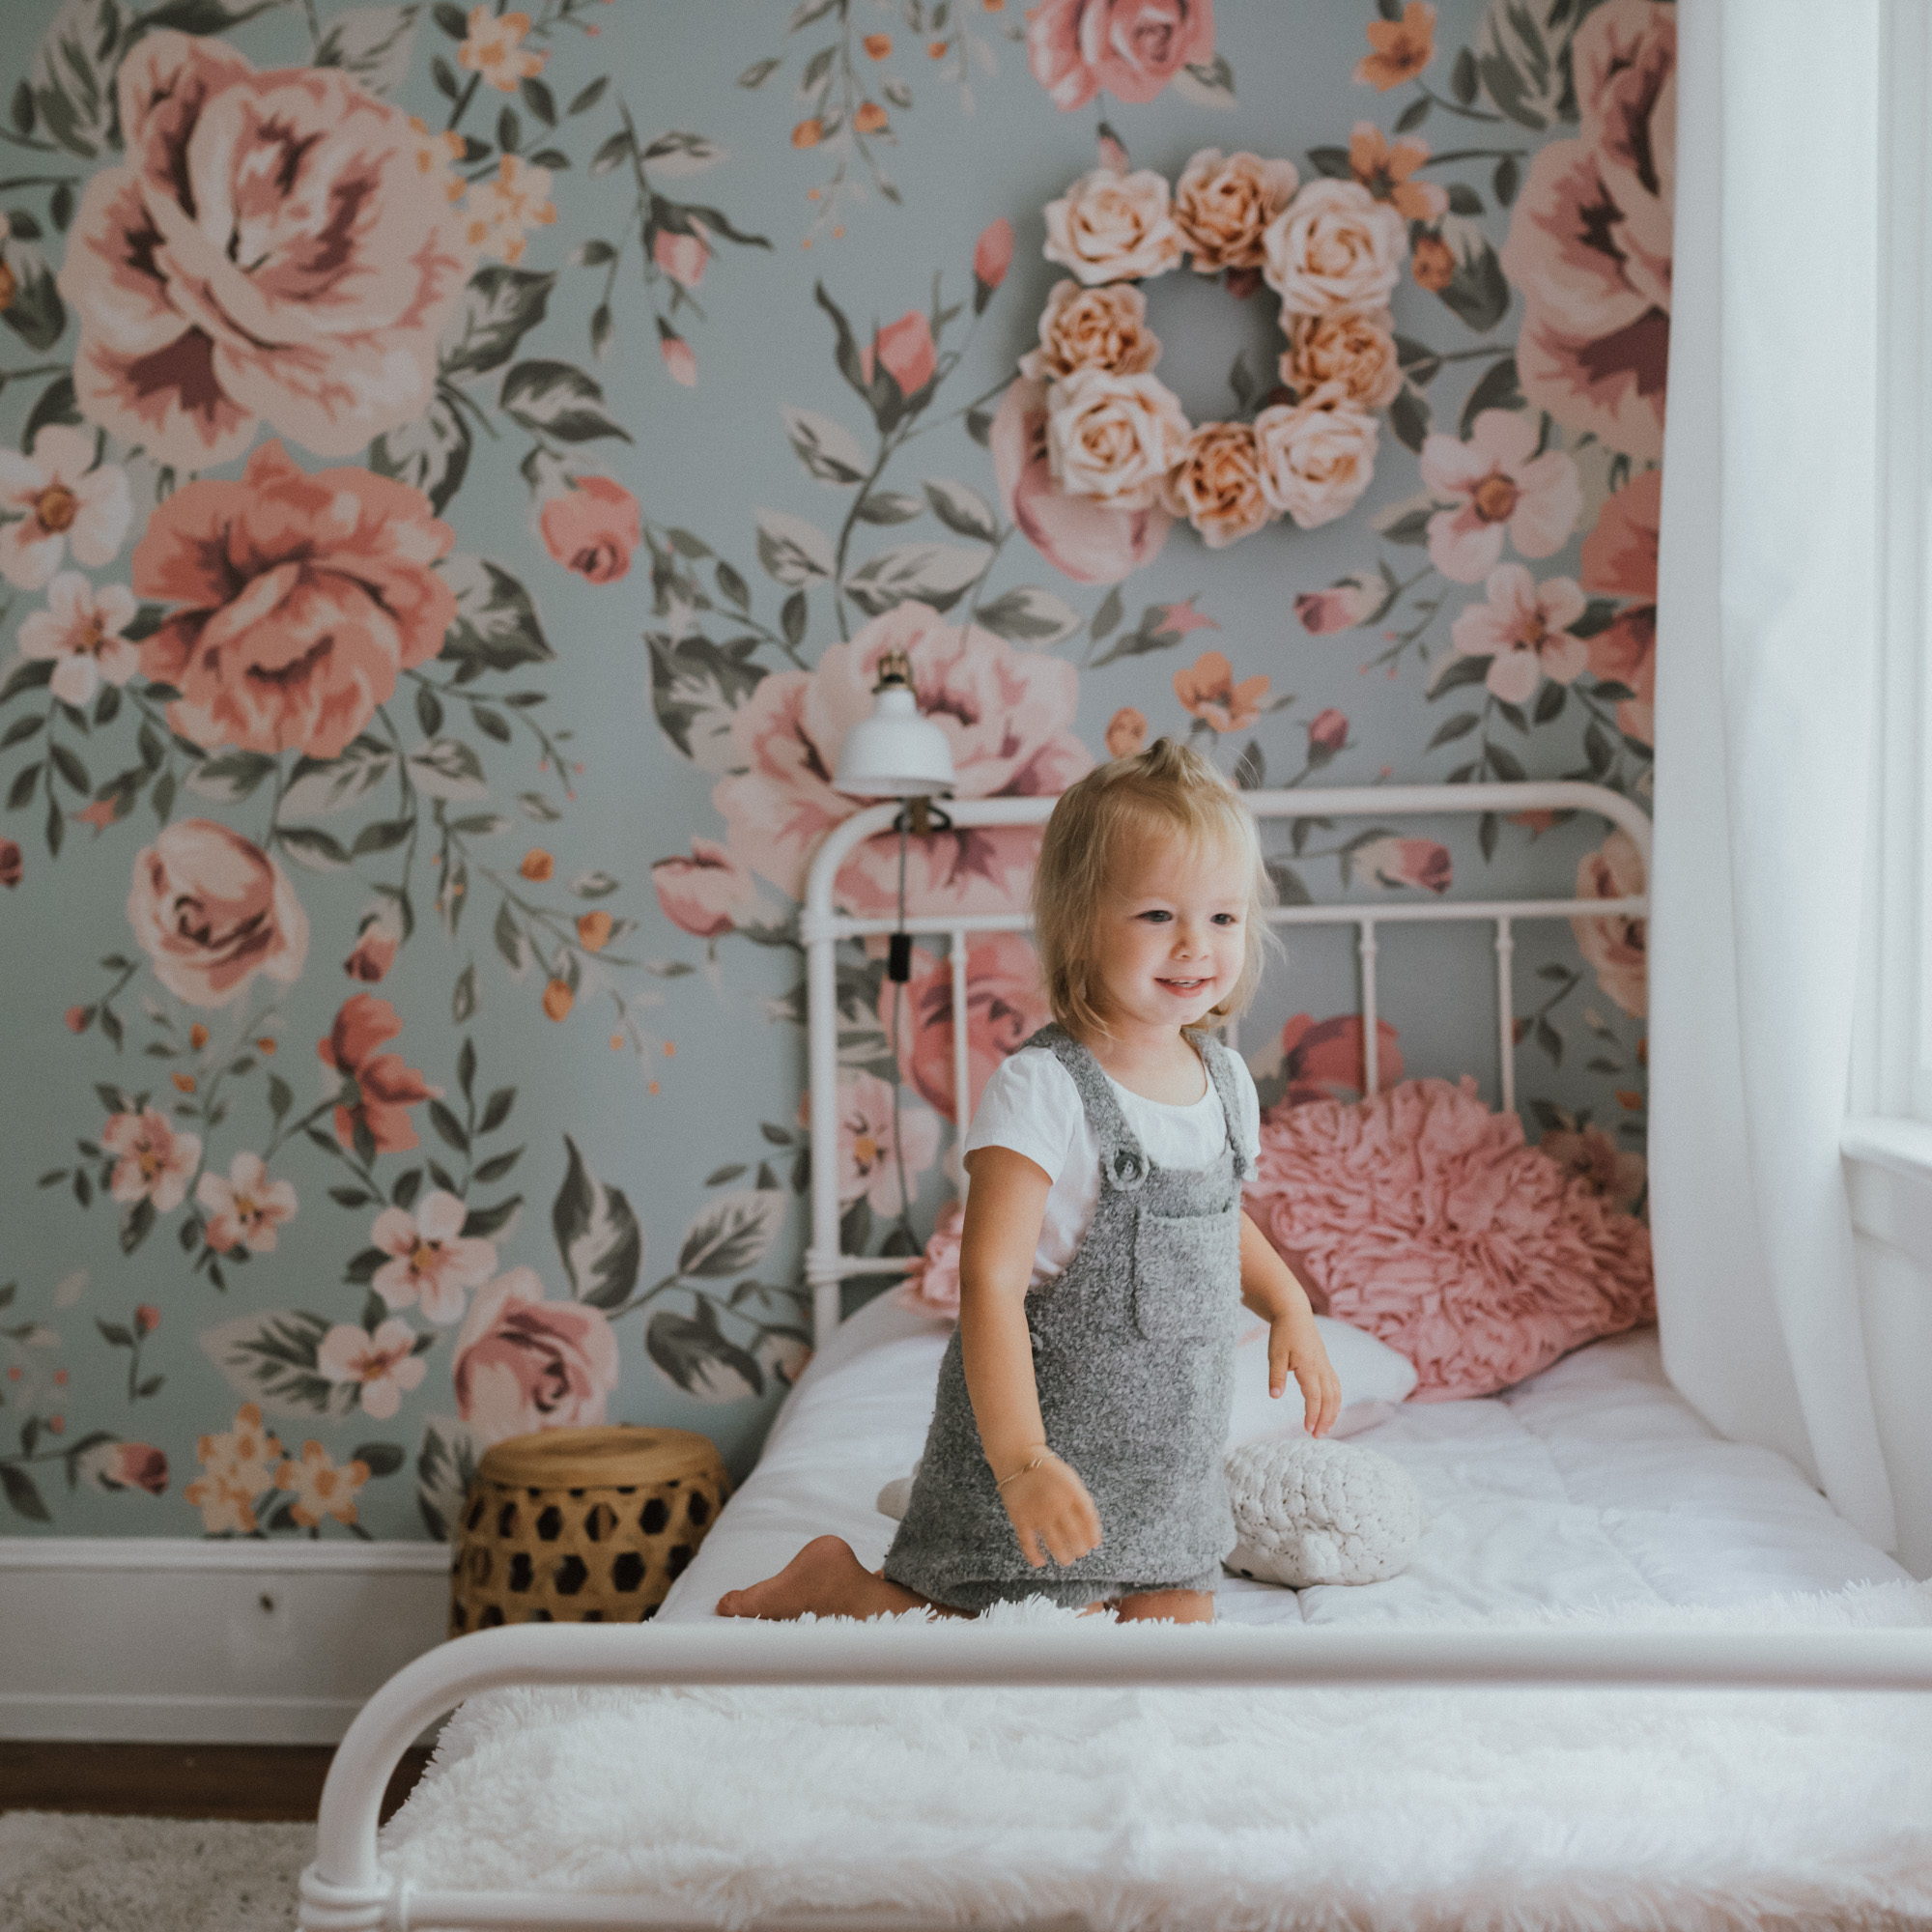 The Wild Rosebuds | We Are Home| Poppys new room | Anewall Mural